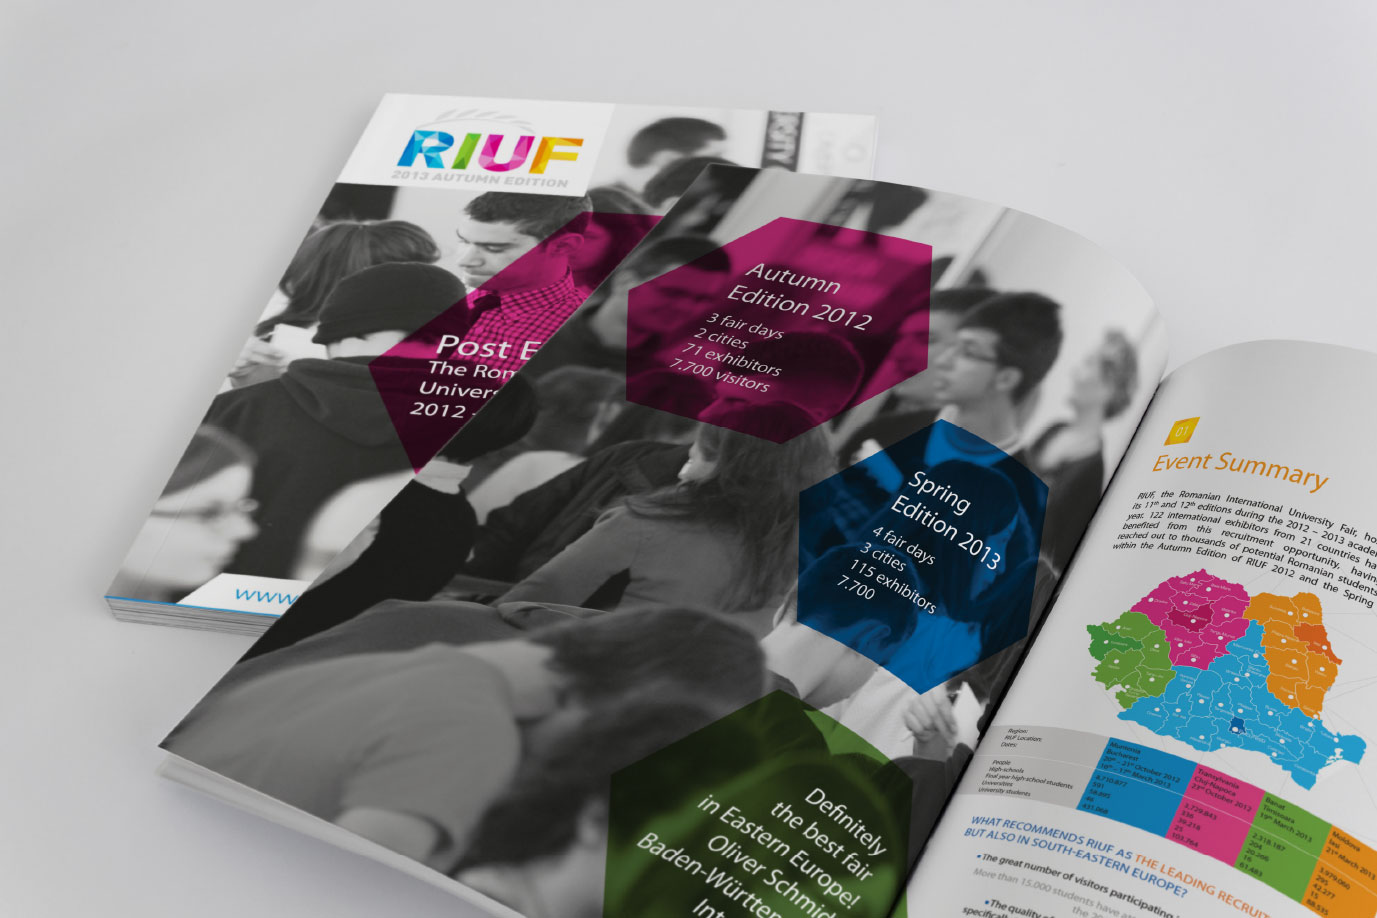 RIUF - Branding and Packaging by Eikon7 Digital Marketing Agency